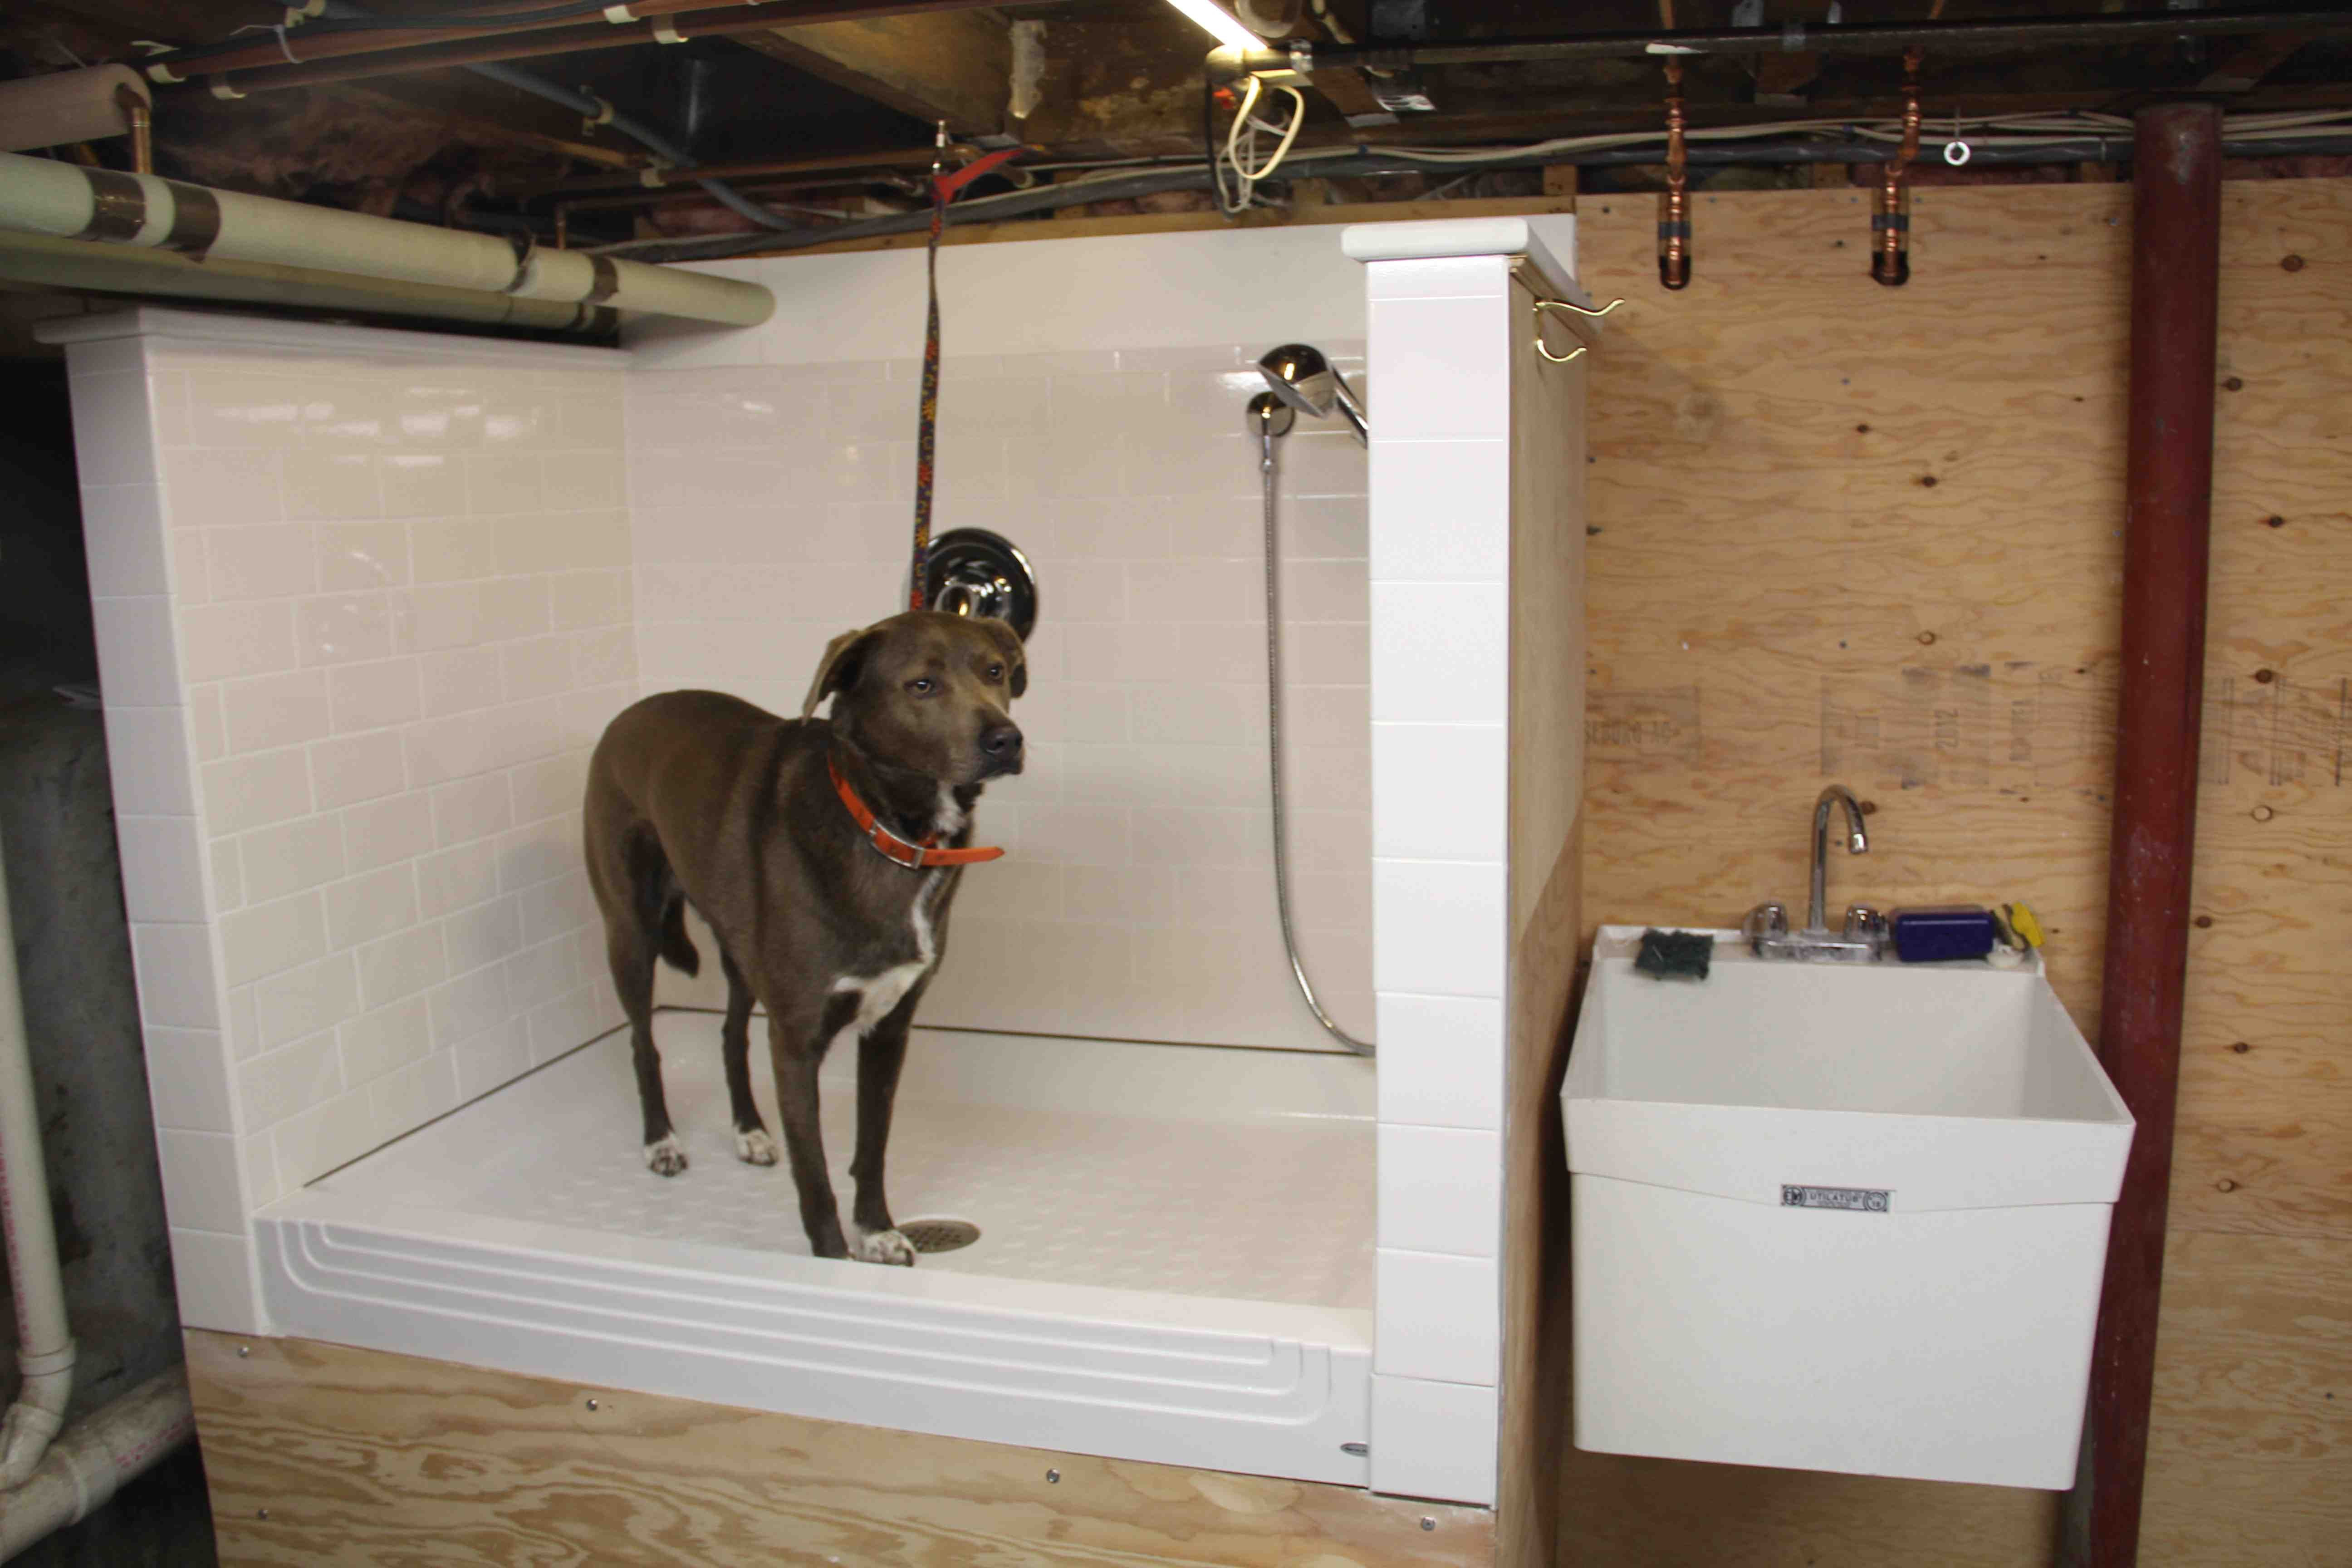 Best ideas about DIY Dog Bathing . Save or Pin How To Build A Dog Wash Station DIY Pets Now.